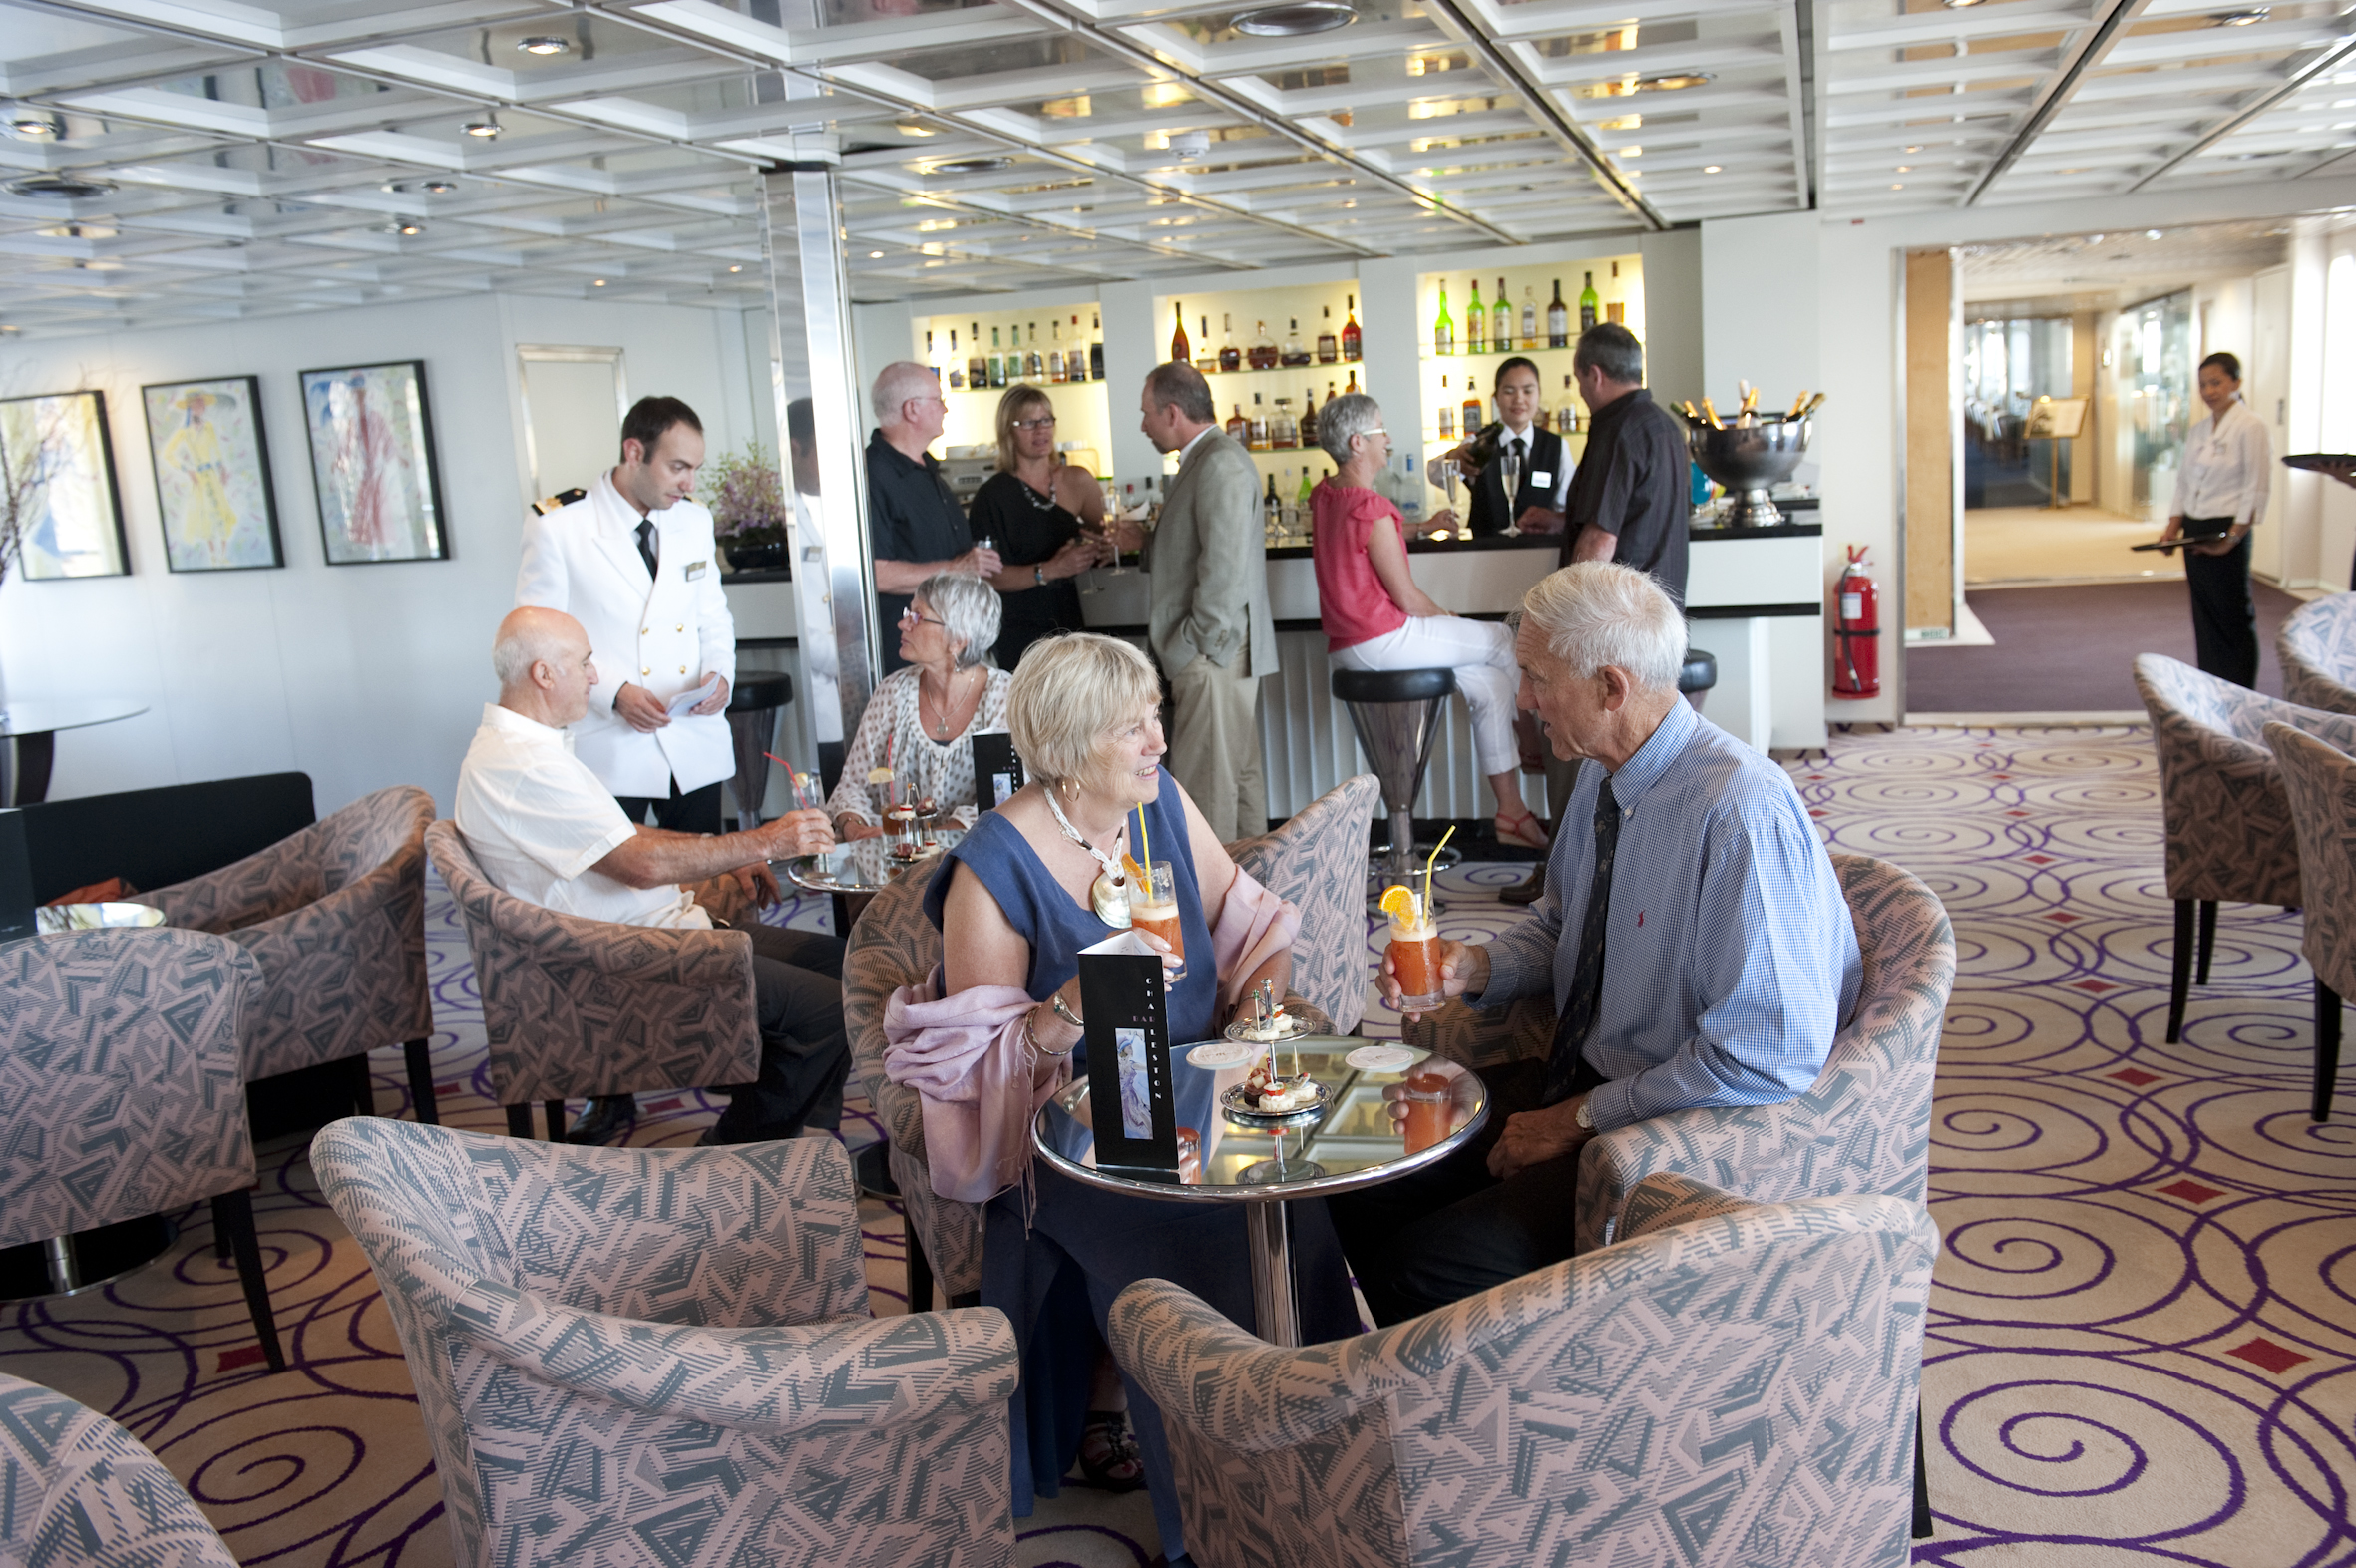 Voyages to Antiquity Aegean Odyssey Lounge.jpg